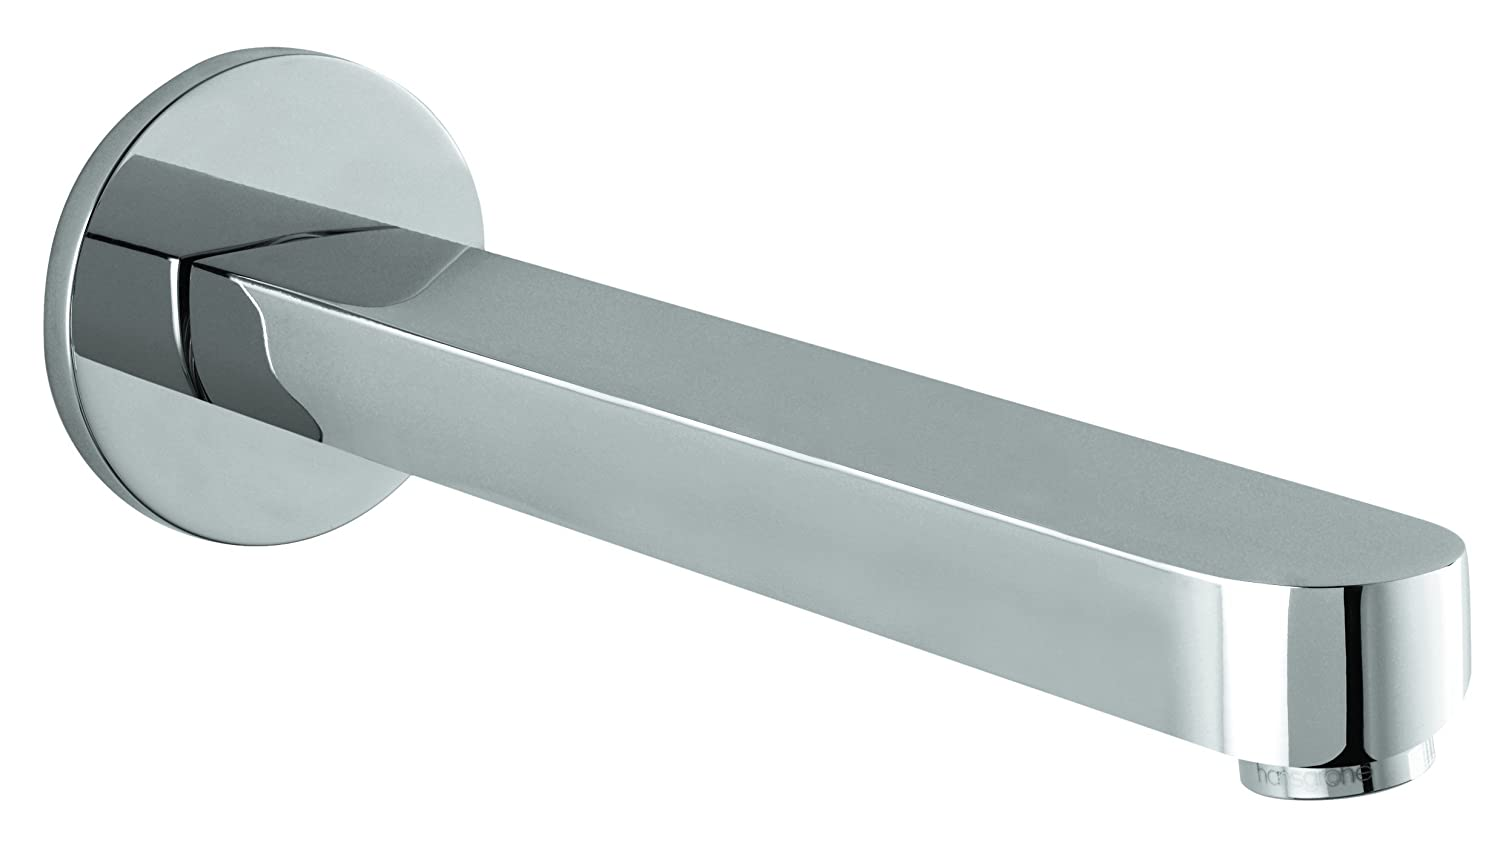 Hansgrohe 14421001 S Tub Spout, 9-Inch, Chrome - Tub Filler Faucets ...